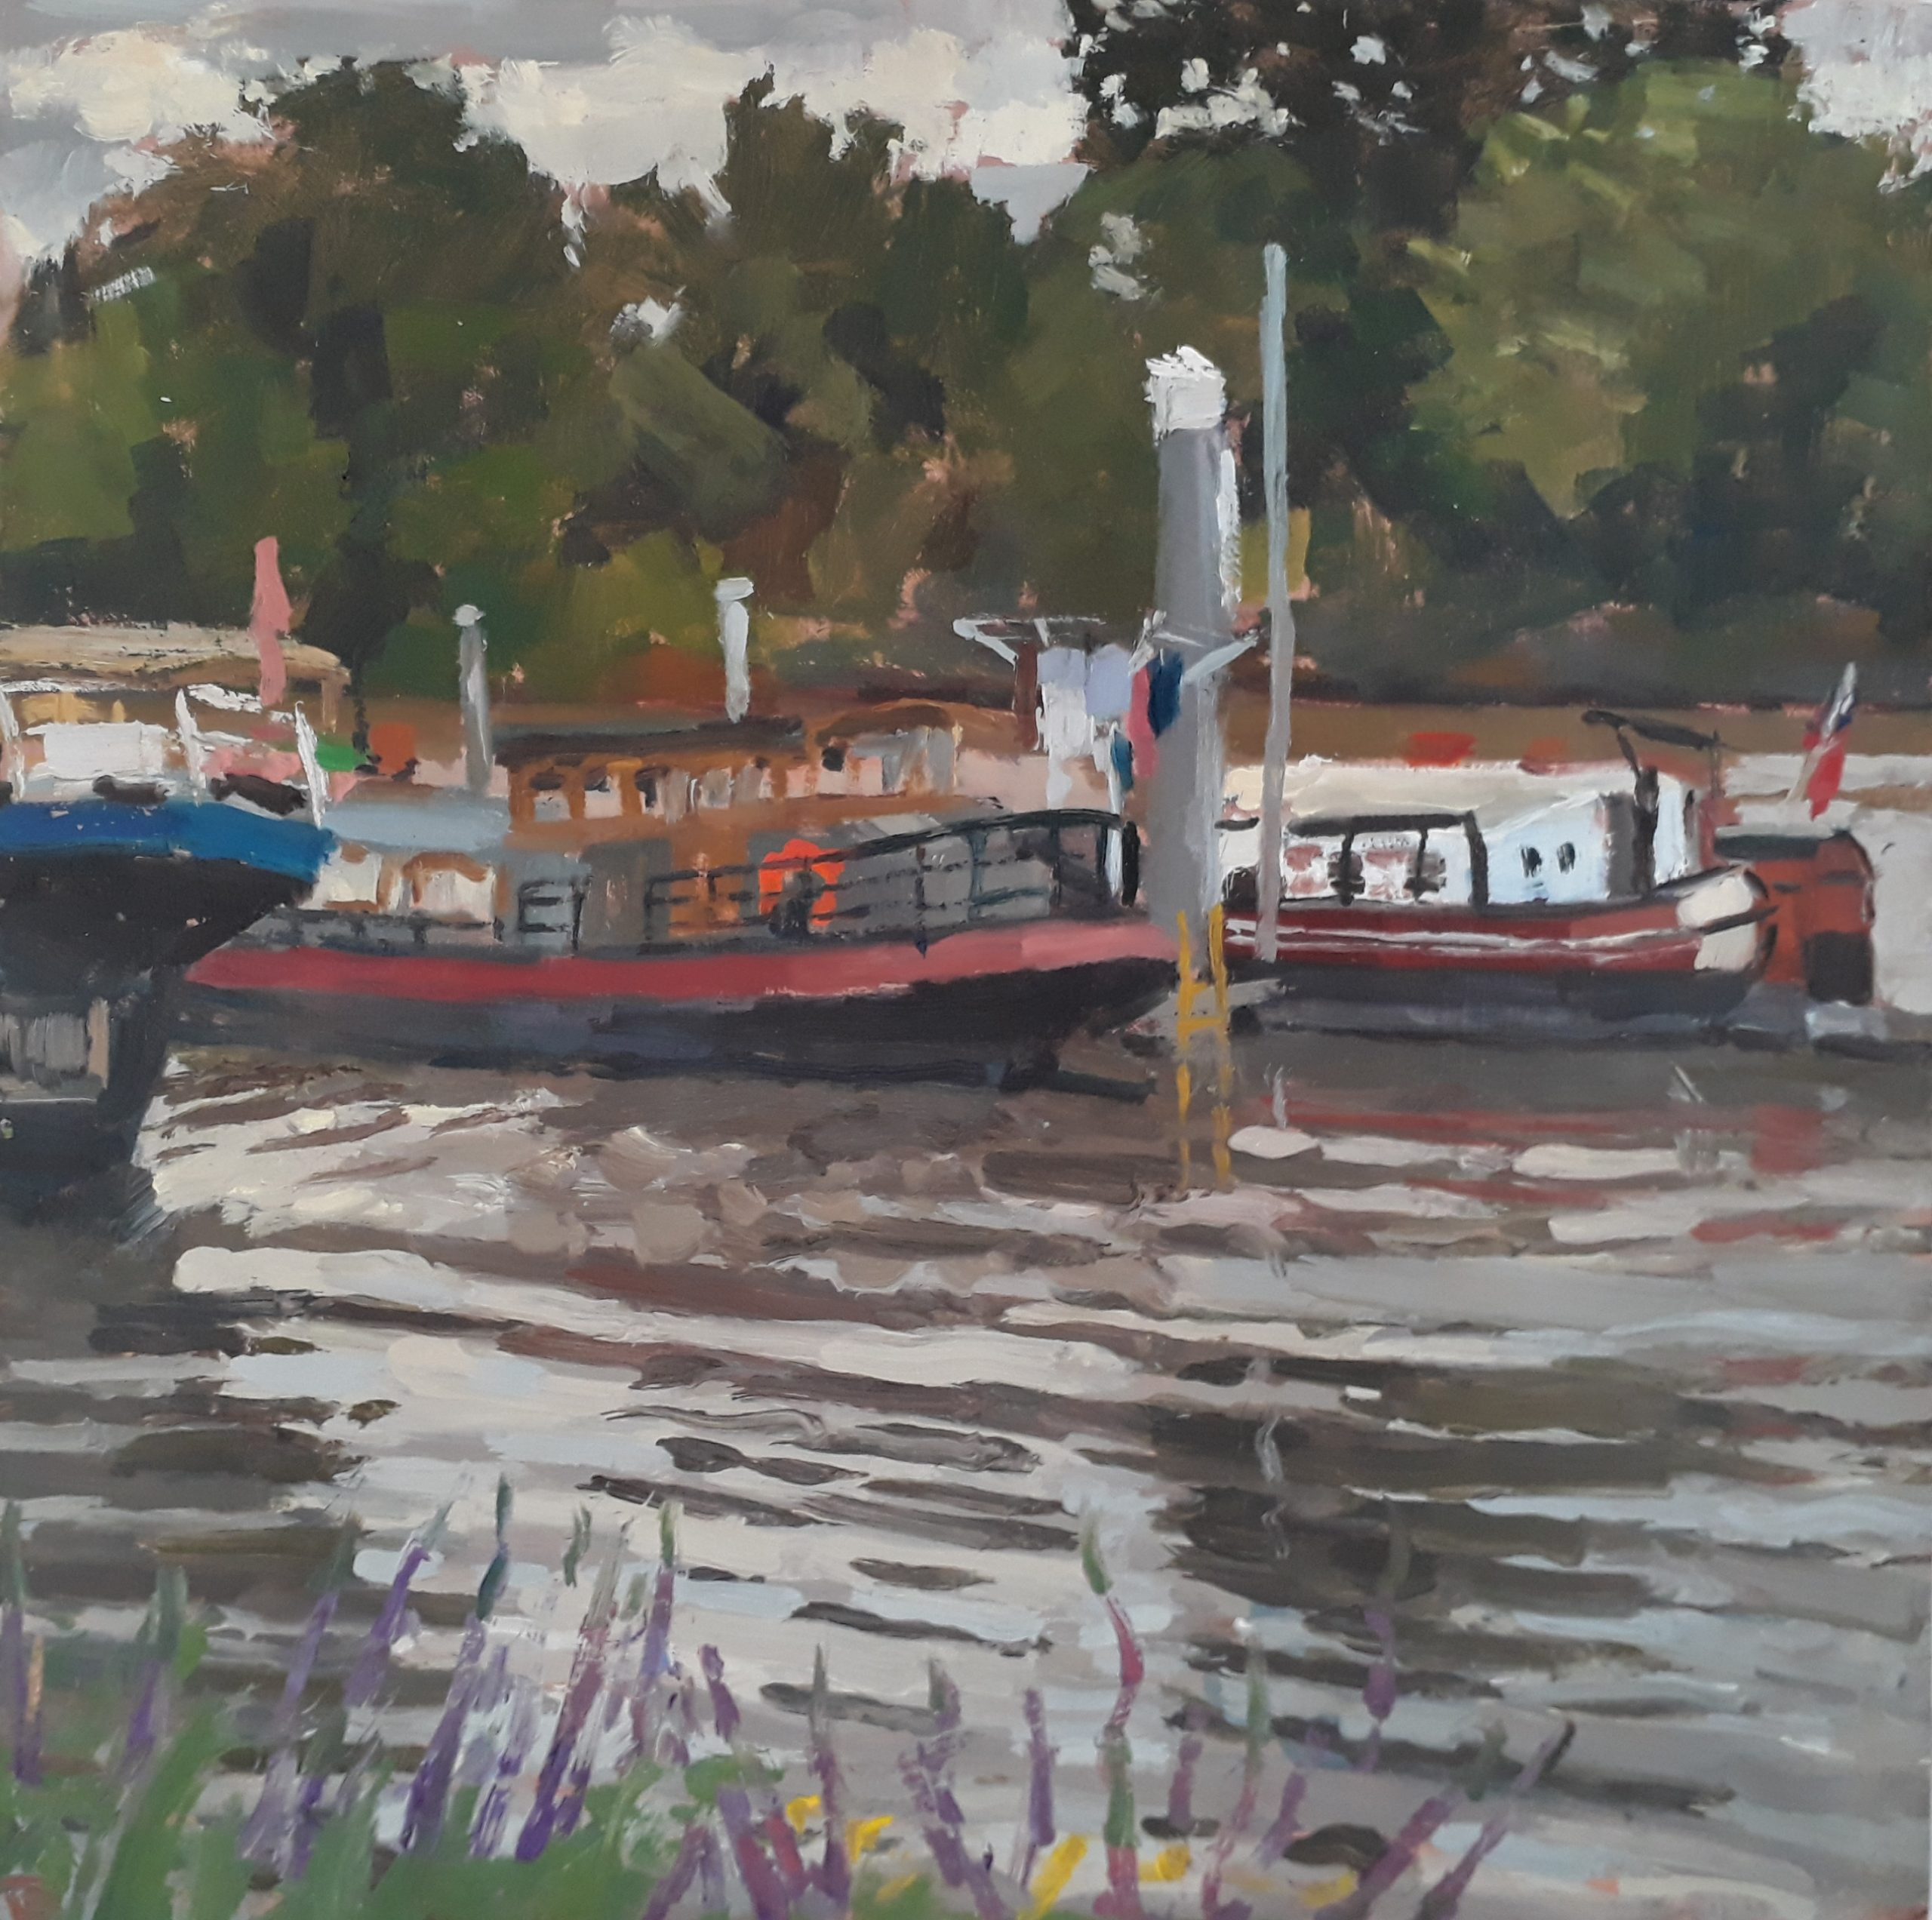 Houseboats on the Thames